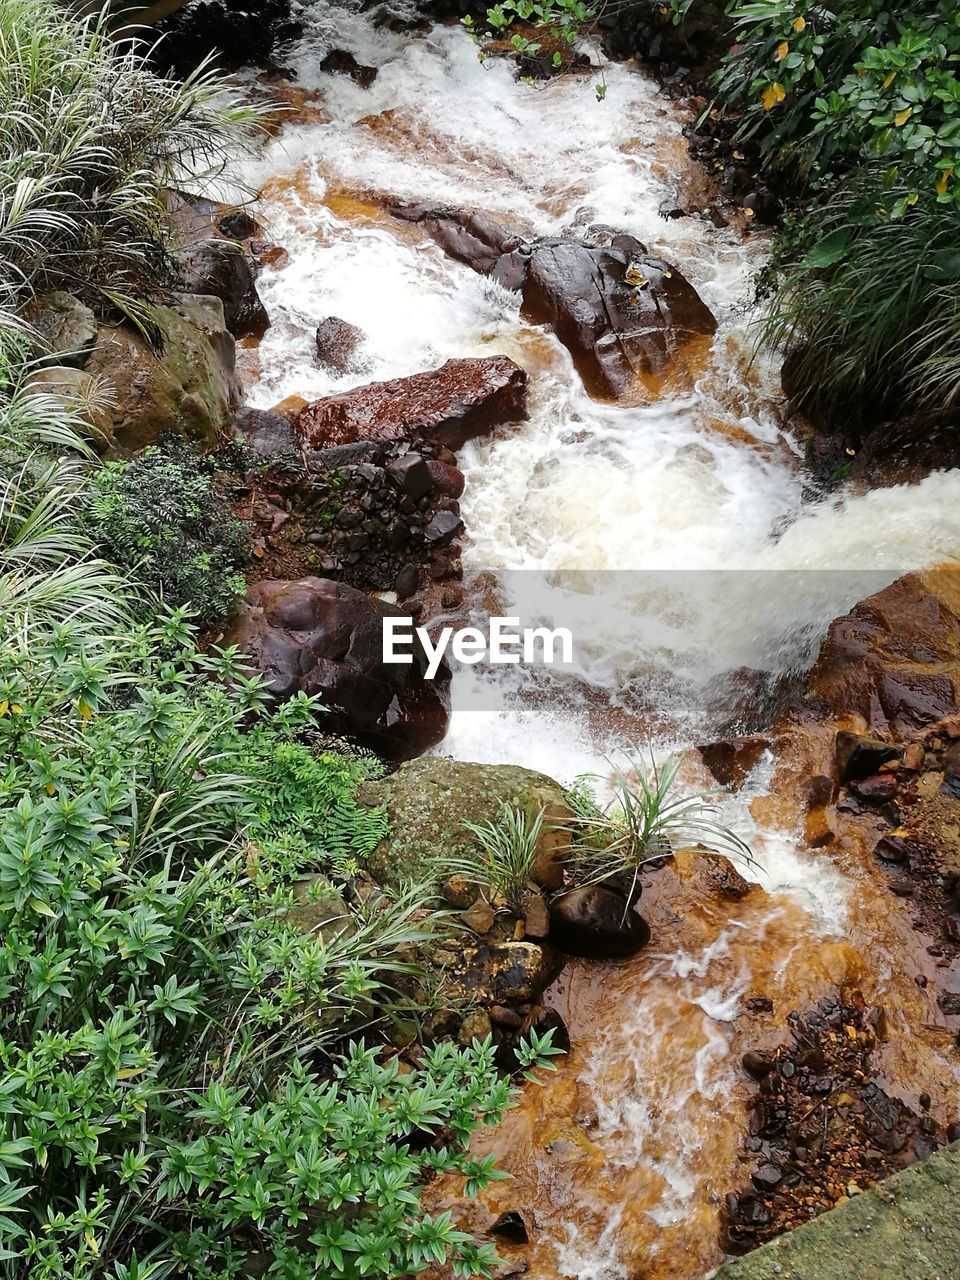 water, flowing water, rock - object, nature, high angle view, waterfall, no people, river, outdoors, plant, day, motion, beauty in nature, animal themes, mammal